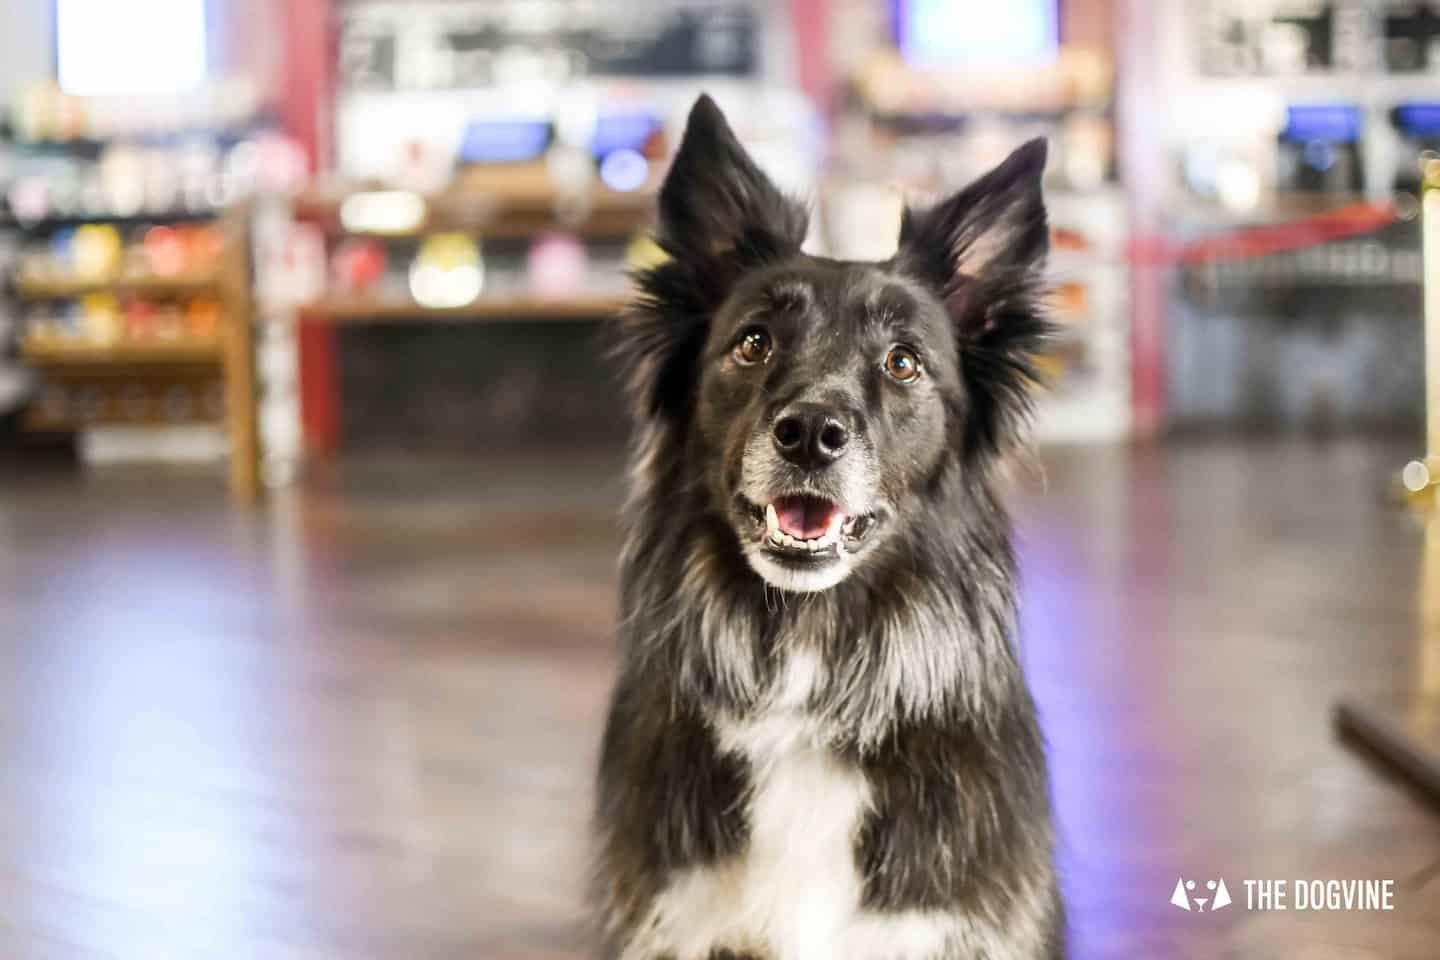 Dog-Friendly Cinema At Picturehouse Central October 2018